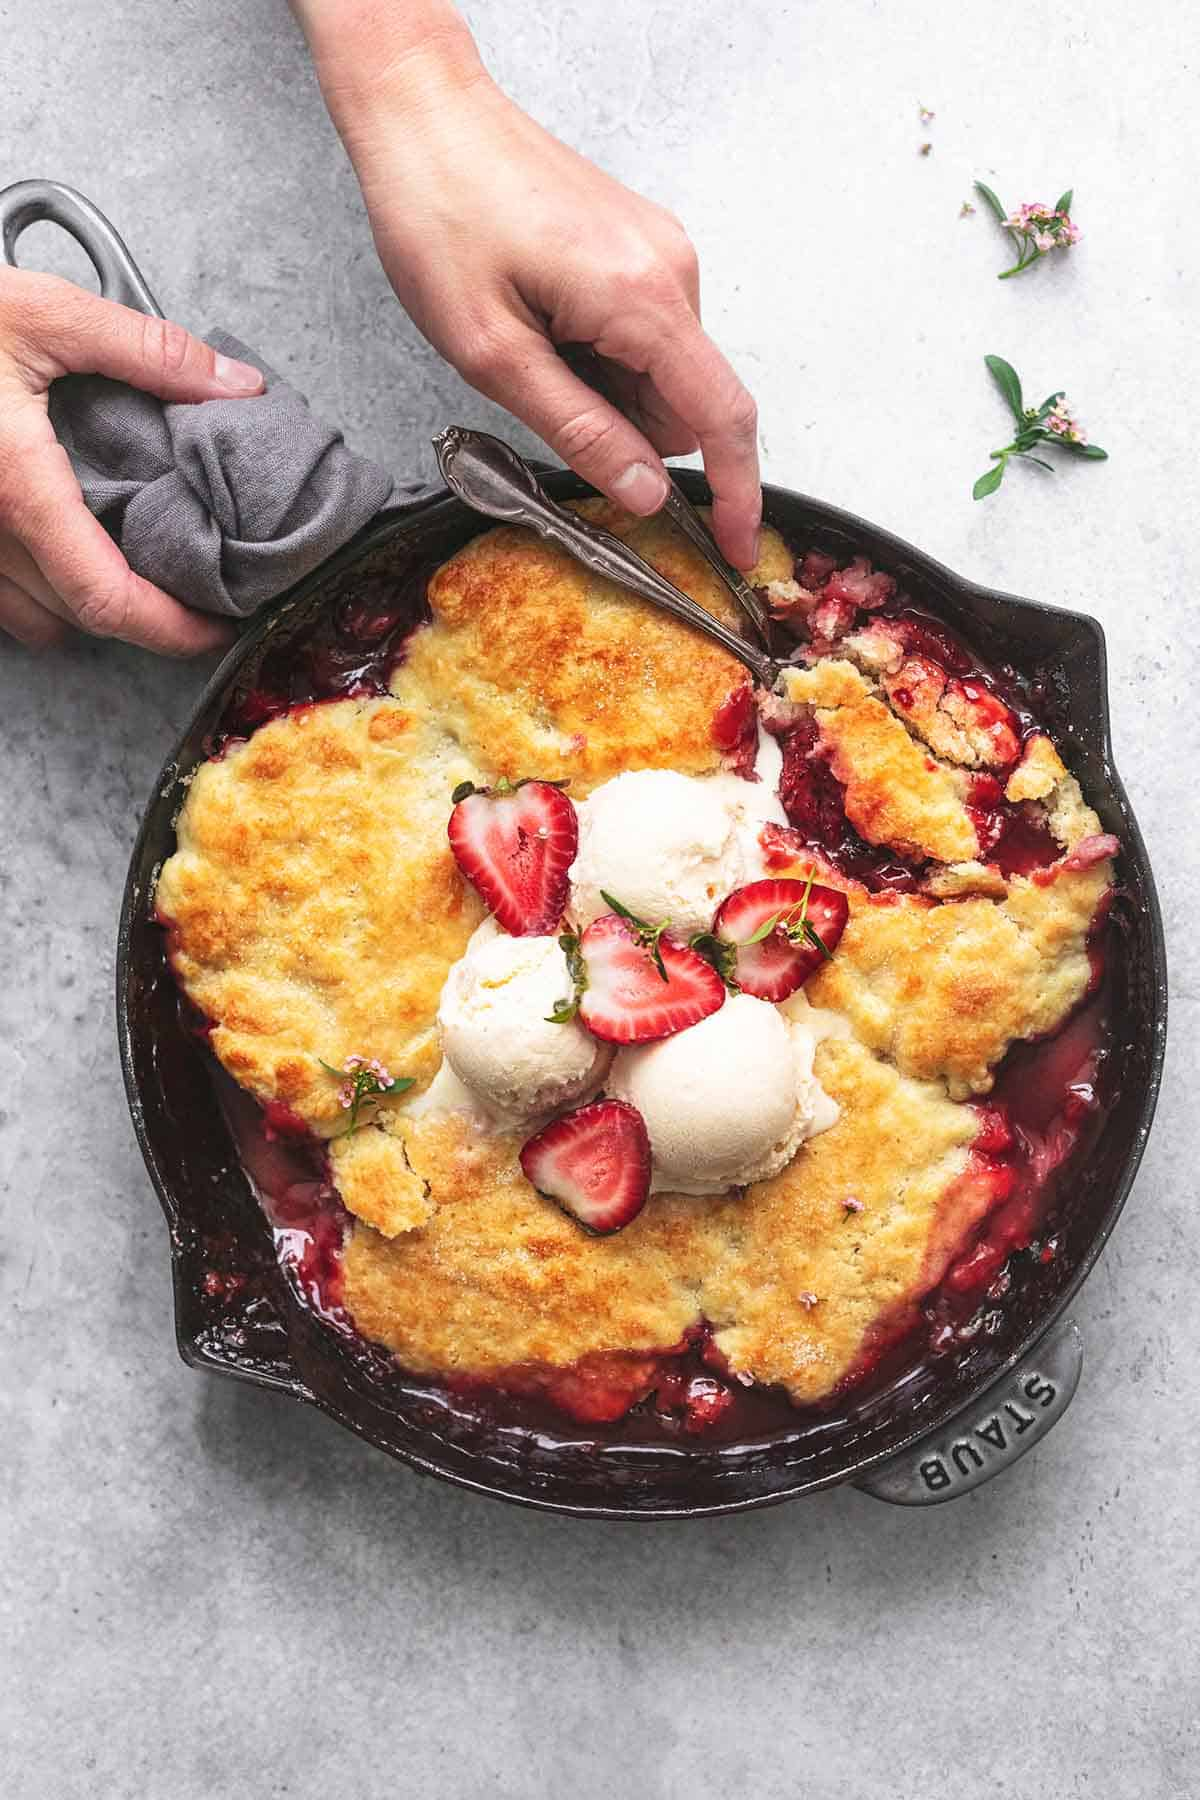 overhead view of hands serving skillet full of baked strawberry cobbler